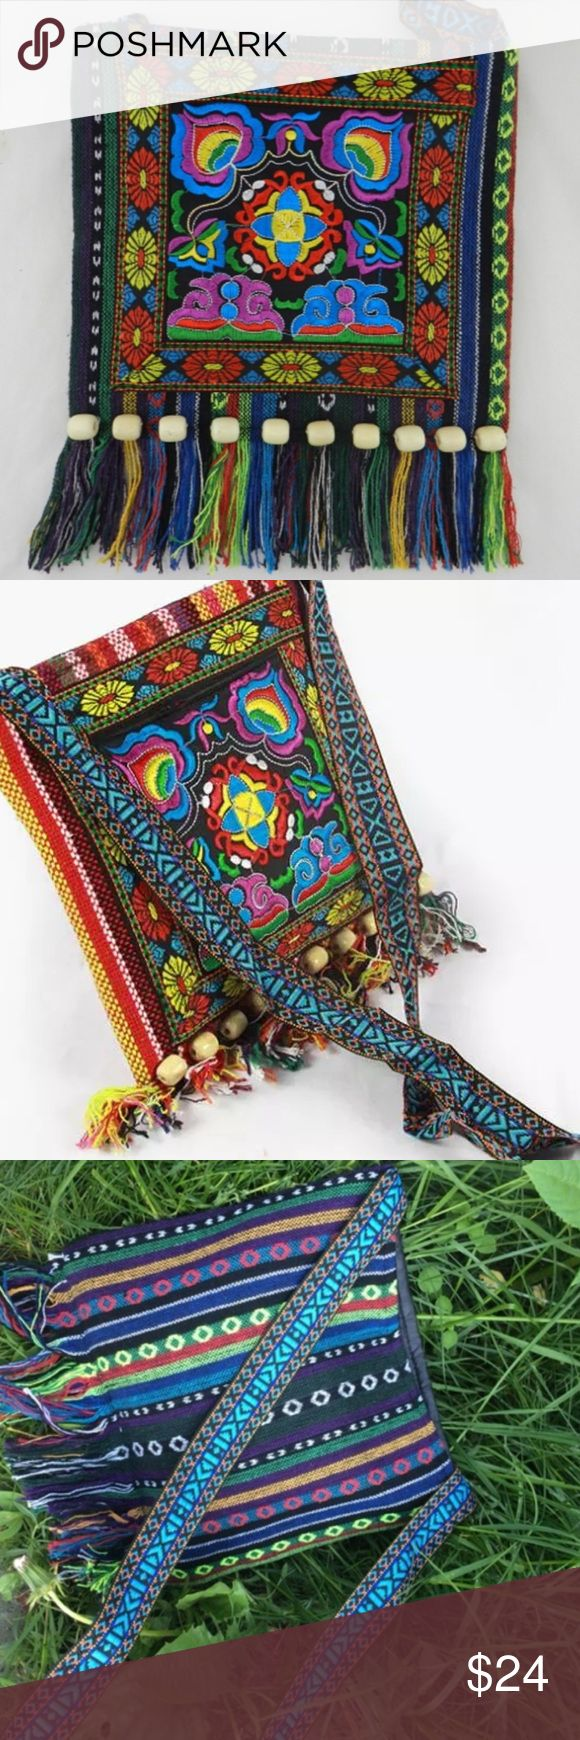 """Vintage Boho Embroidery Hobo Crossbody Handbag Gorgeous vibrant hobo bag with embroidered floral pattern front, a line of 10 wooden beads over a multicolored 2"""" fringe bottom.  11"""" wide. 13"""" high.  Black chiffon fabric lining.  Zipper closure.  Strap is 1.5"""" wide and 46"""" long.  Perfect for use as either a crossbody or messenger bag.  Super cute!   We ship fast... Typically every day!  Brand new with tag.  (E9) Bags Hobos"""